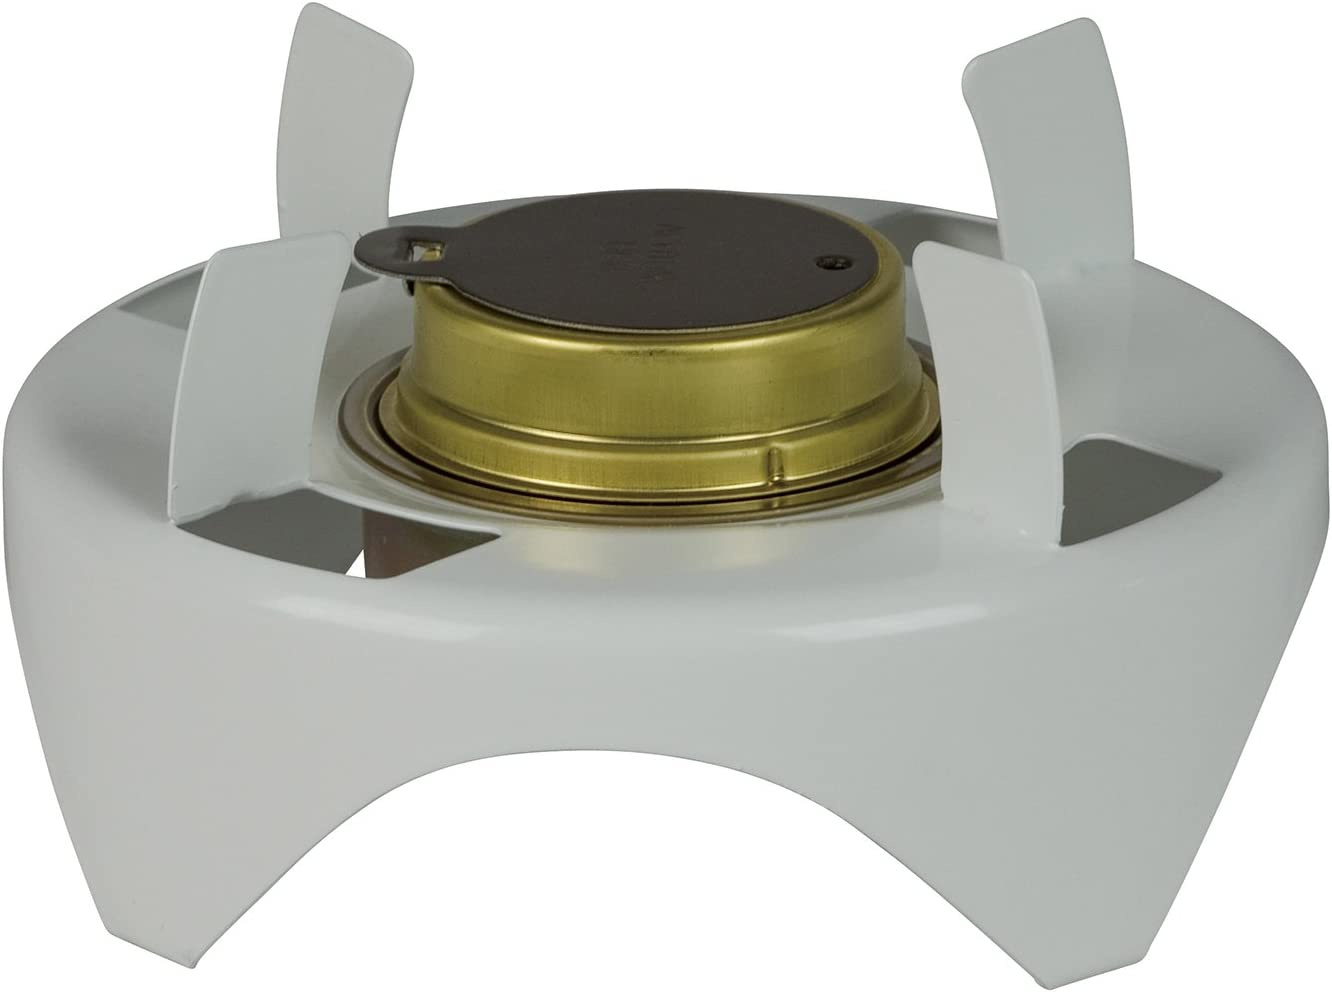 Outdoor Camping Alcohol Stove Stent Pot Trangia Burner Bracket Holder